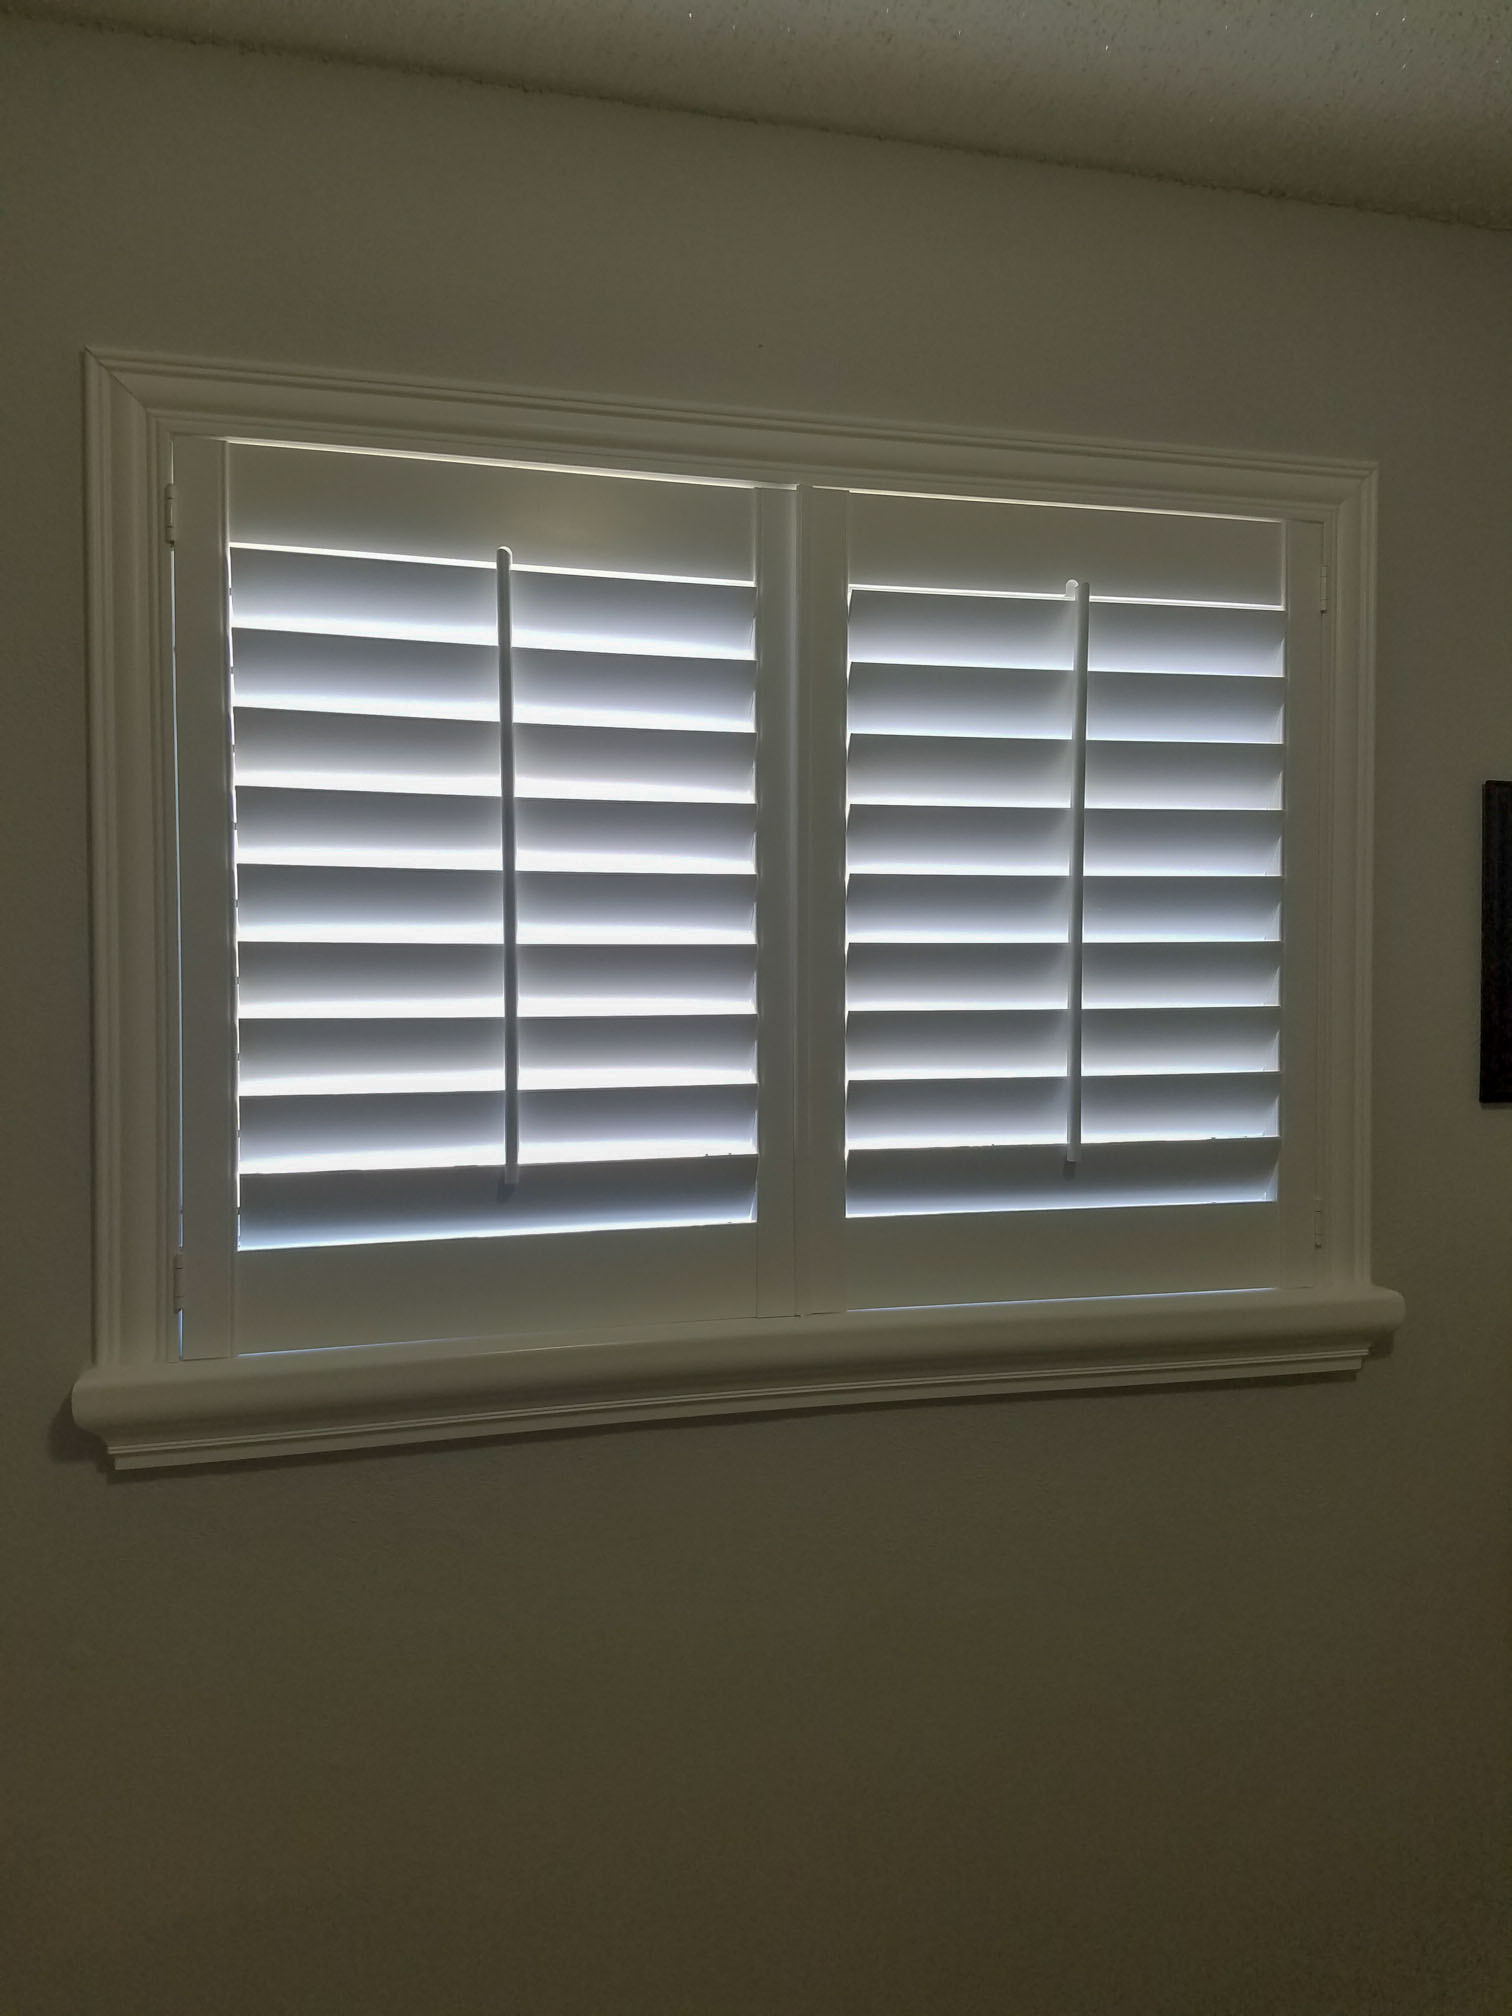 plantation shutters gallery PLANTATION SHUTTERS GALLERY 20170821 173335